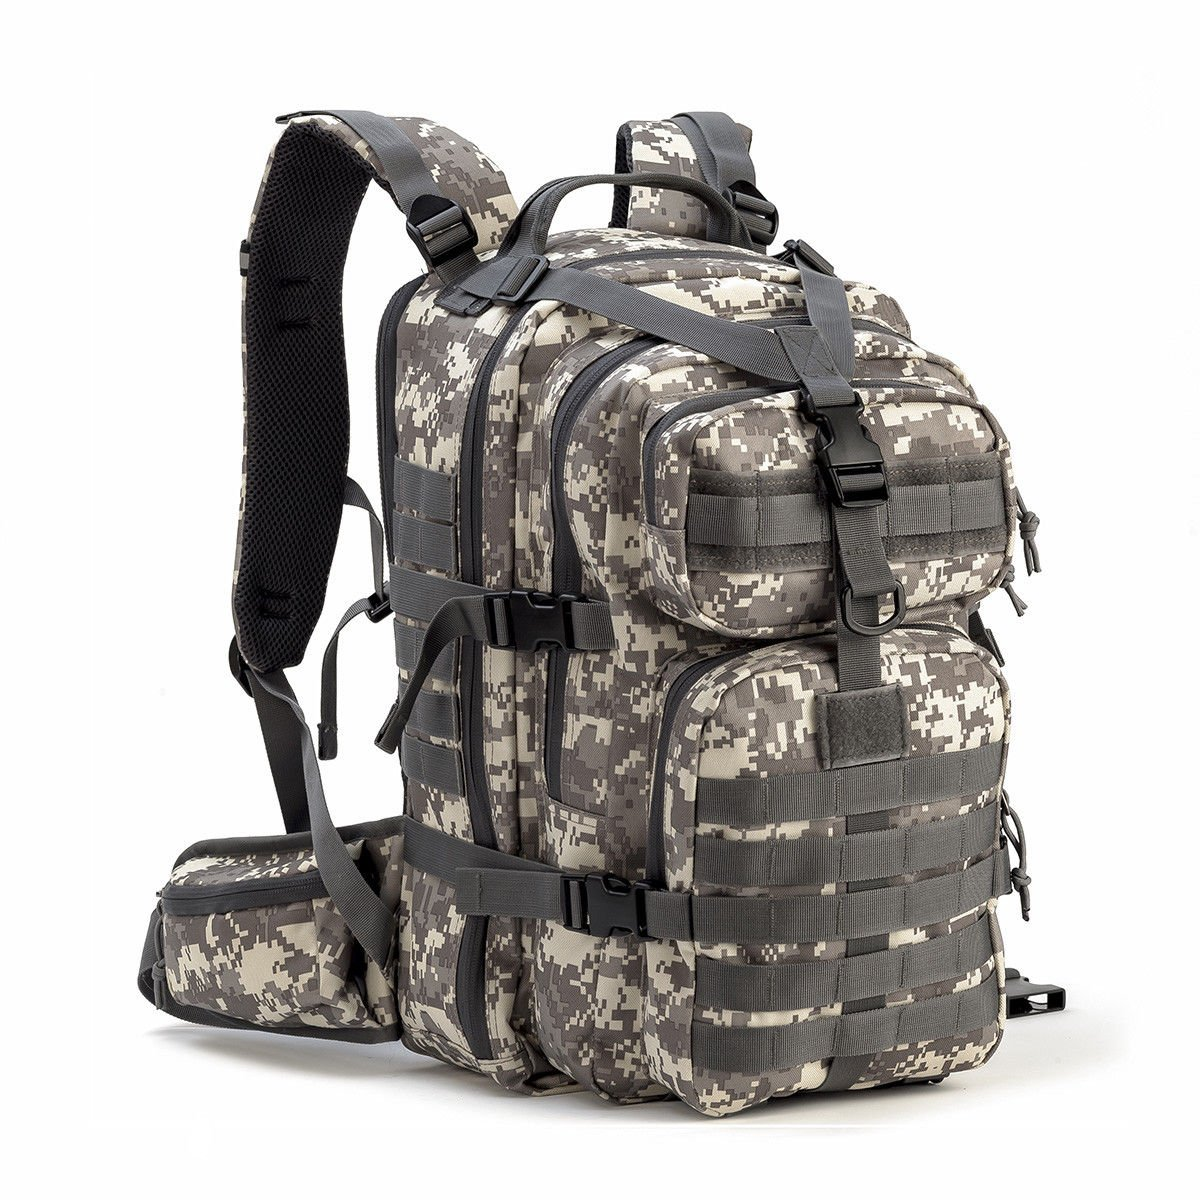 Gelindo Military Tactical Backpack Army Molle Pack Bug Out Bag Hiking ...